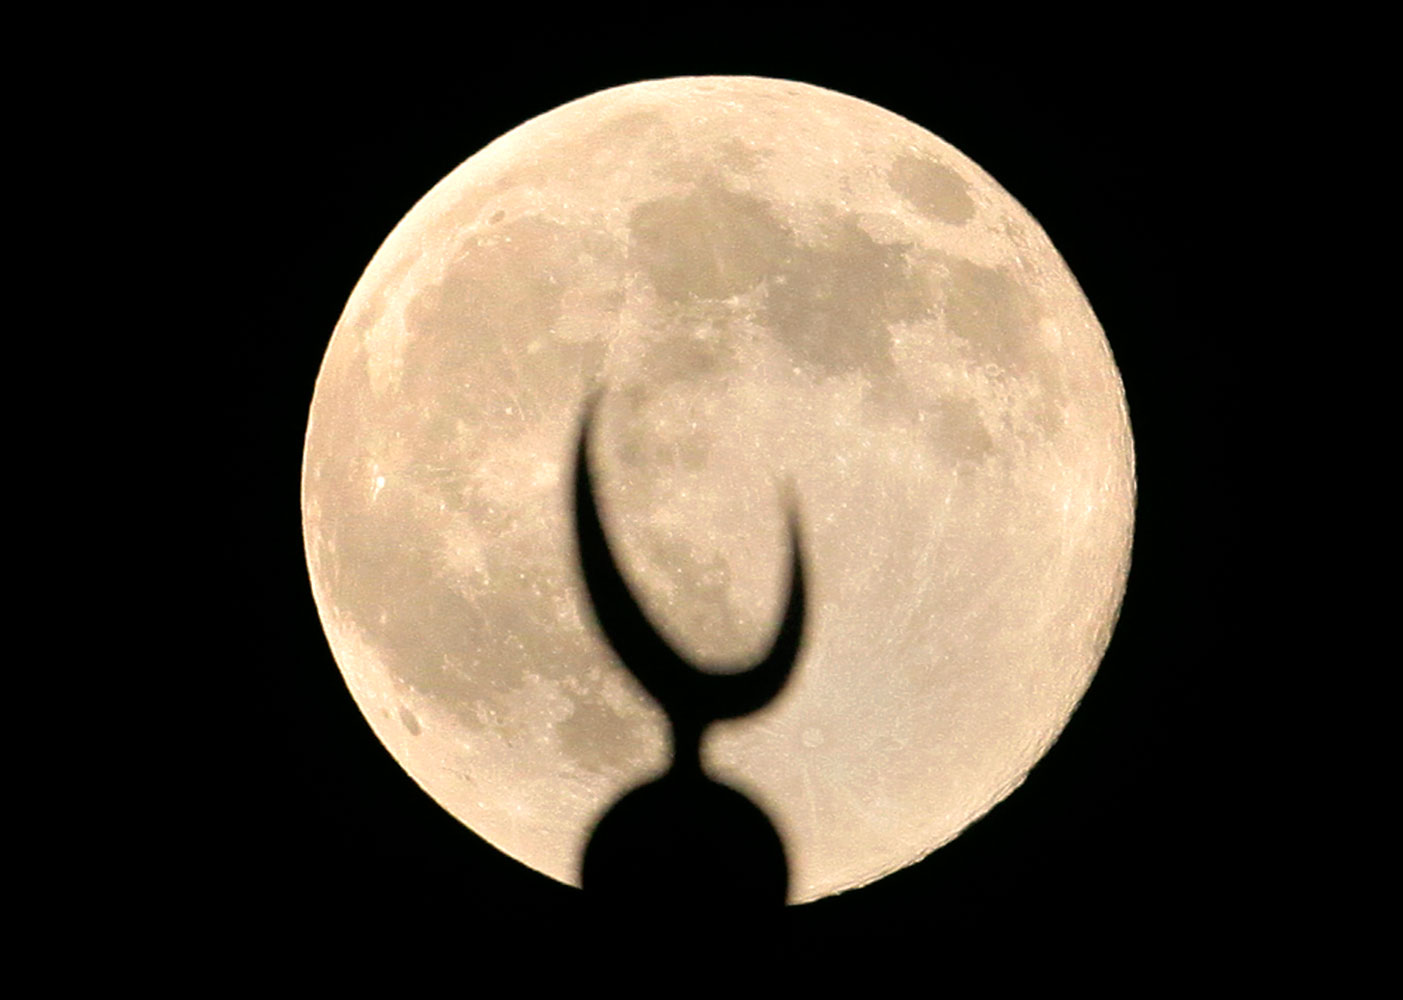 A perigee moon, also known as a supermoon, rises over a crescent of a minaret of grand Faisal mosque in Islamabad, Pakistan, July 12, 2014.